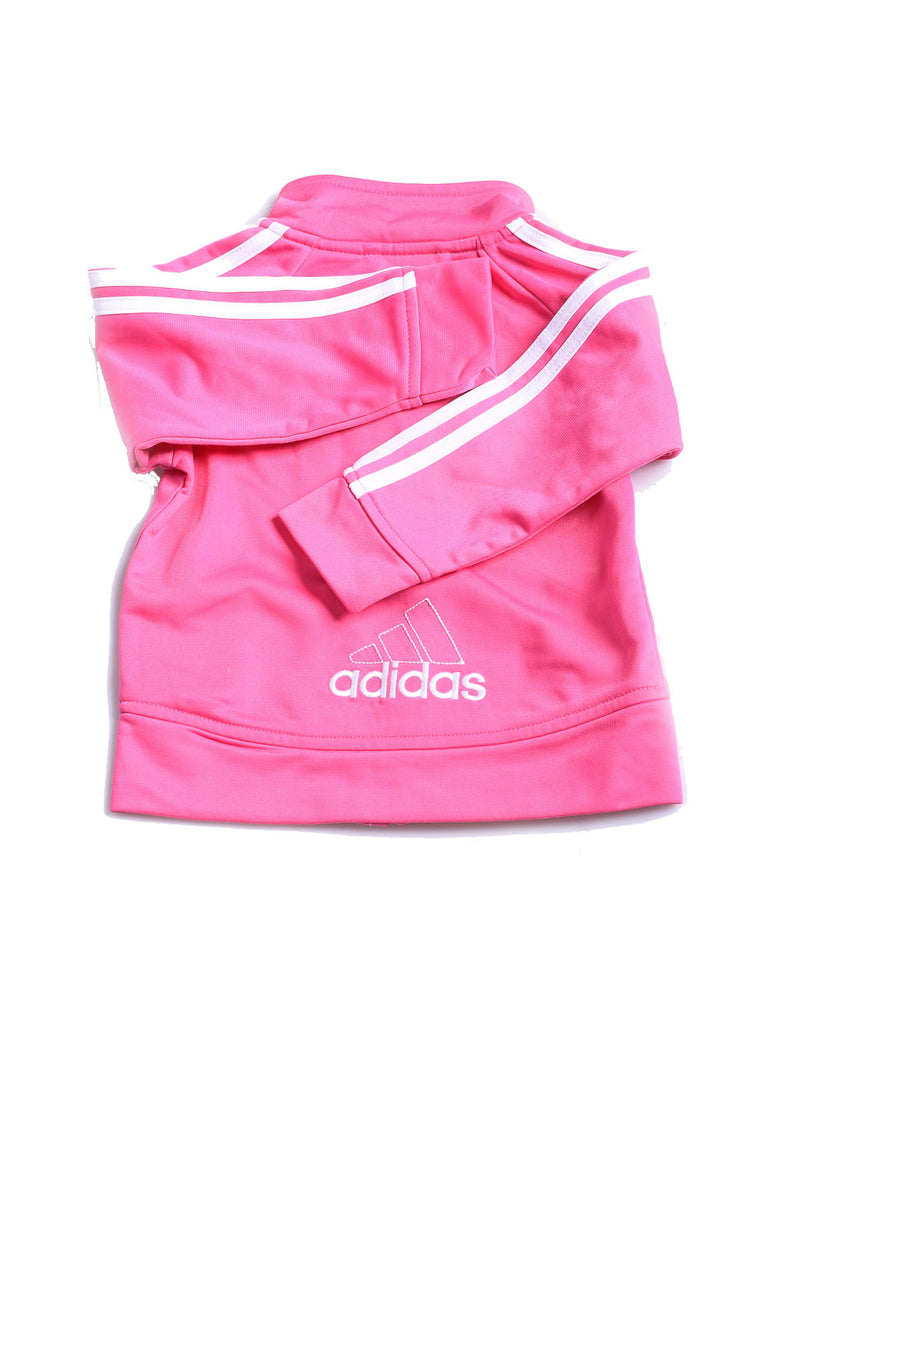 USED Adidas Baby Girl's Jacket 18 Months Pink & White